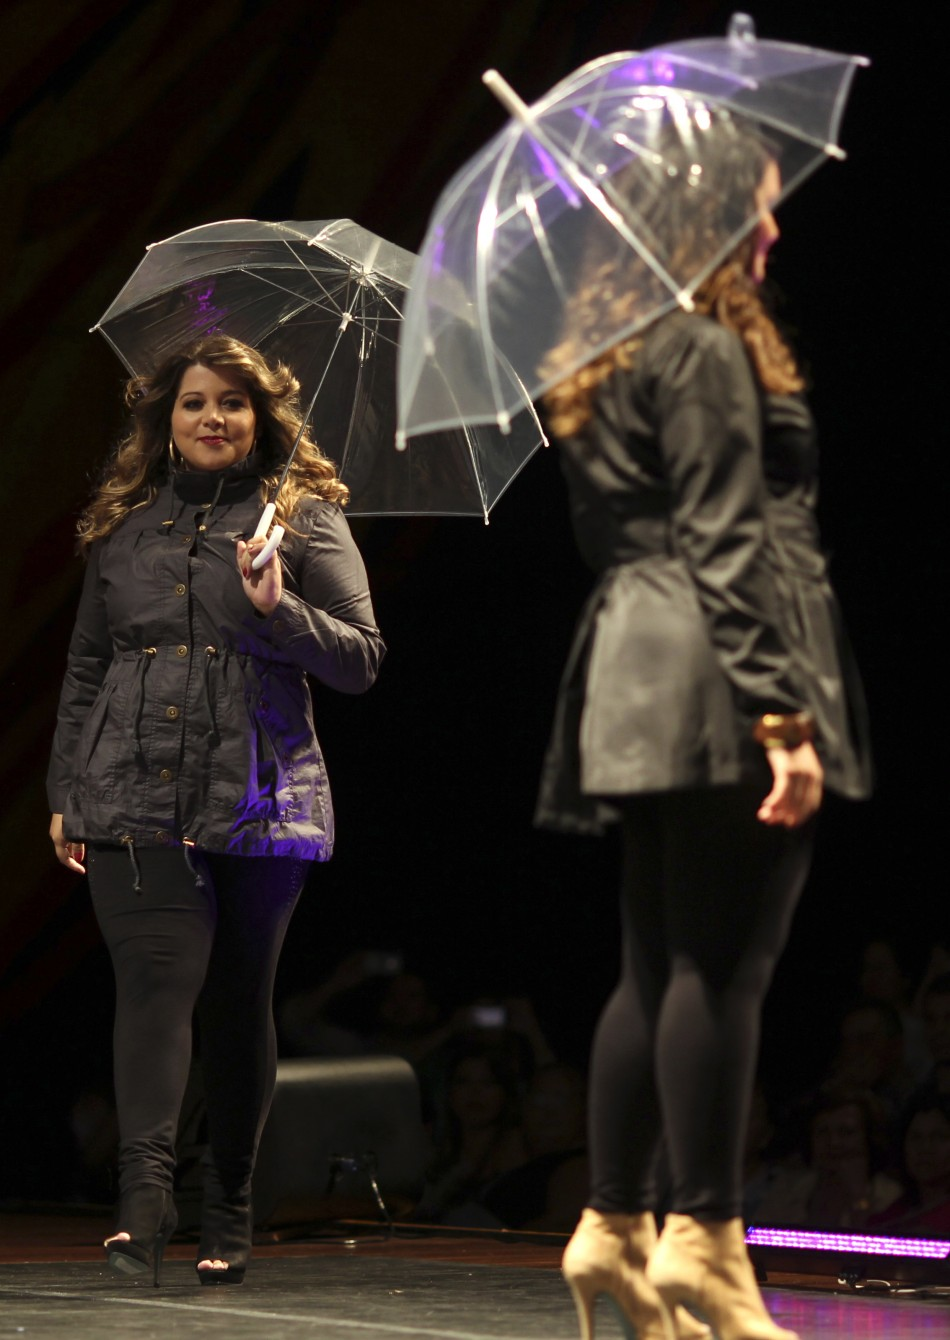 Models walk the runway during a presentation as part of Fashion Weekend Plus Size FallWinter 2013 collection show in Sao Paulo February 23, 2013.